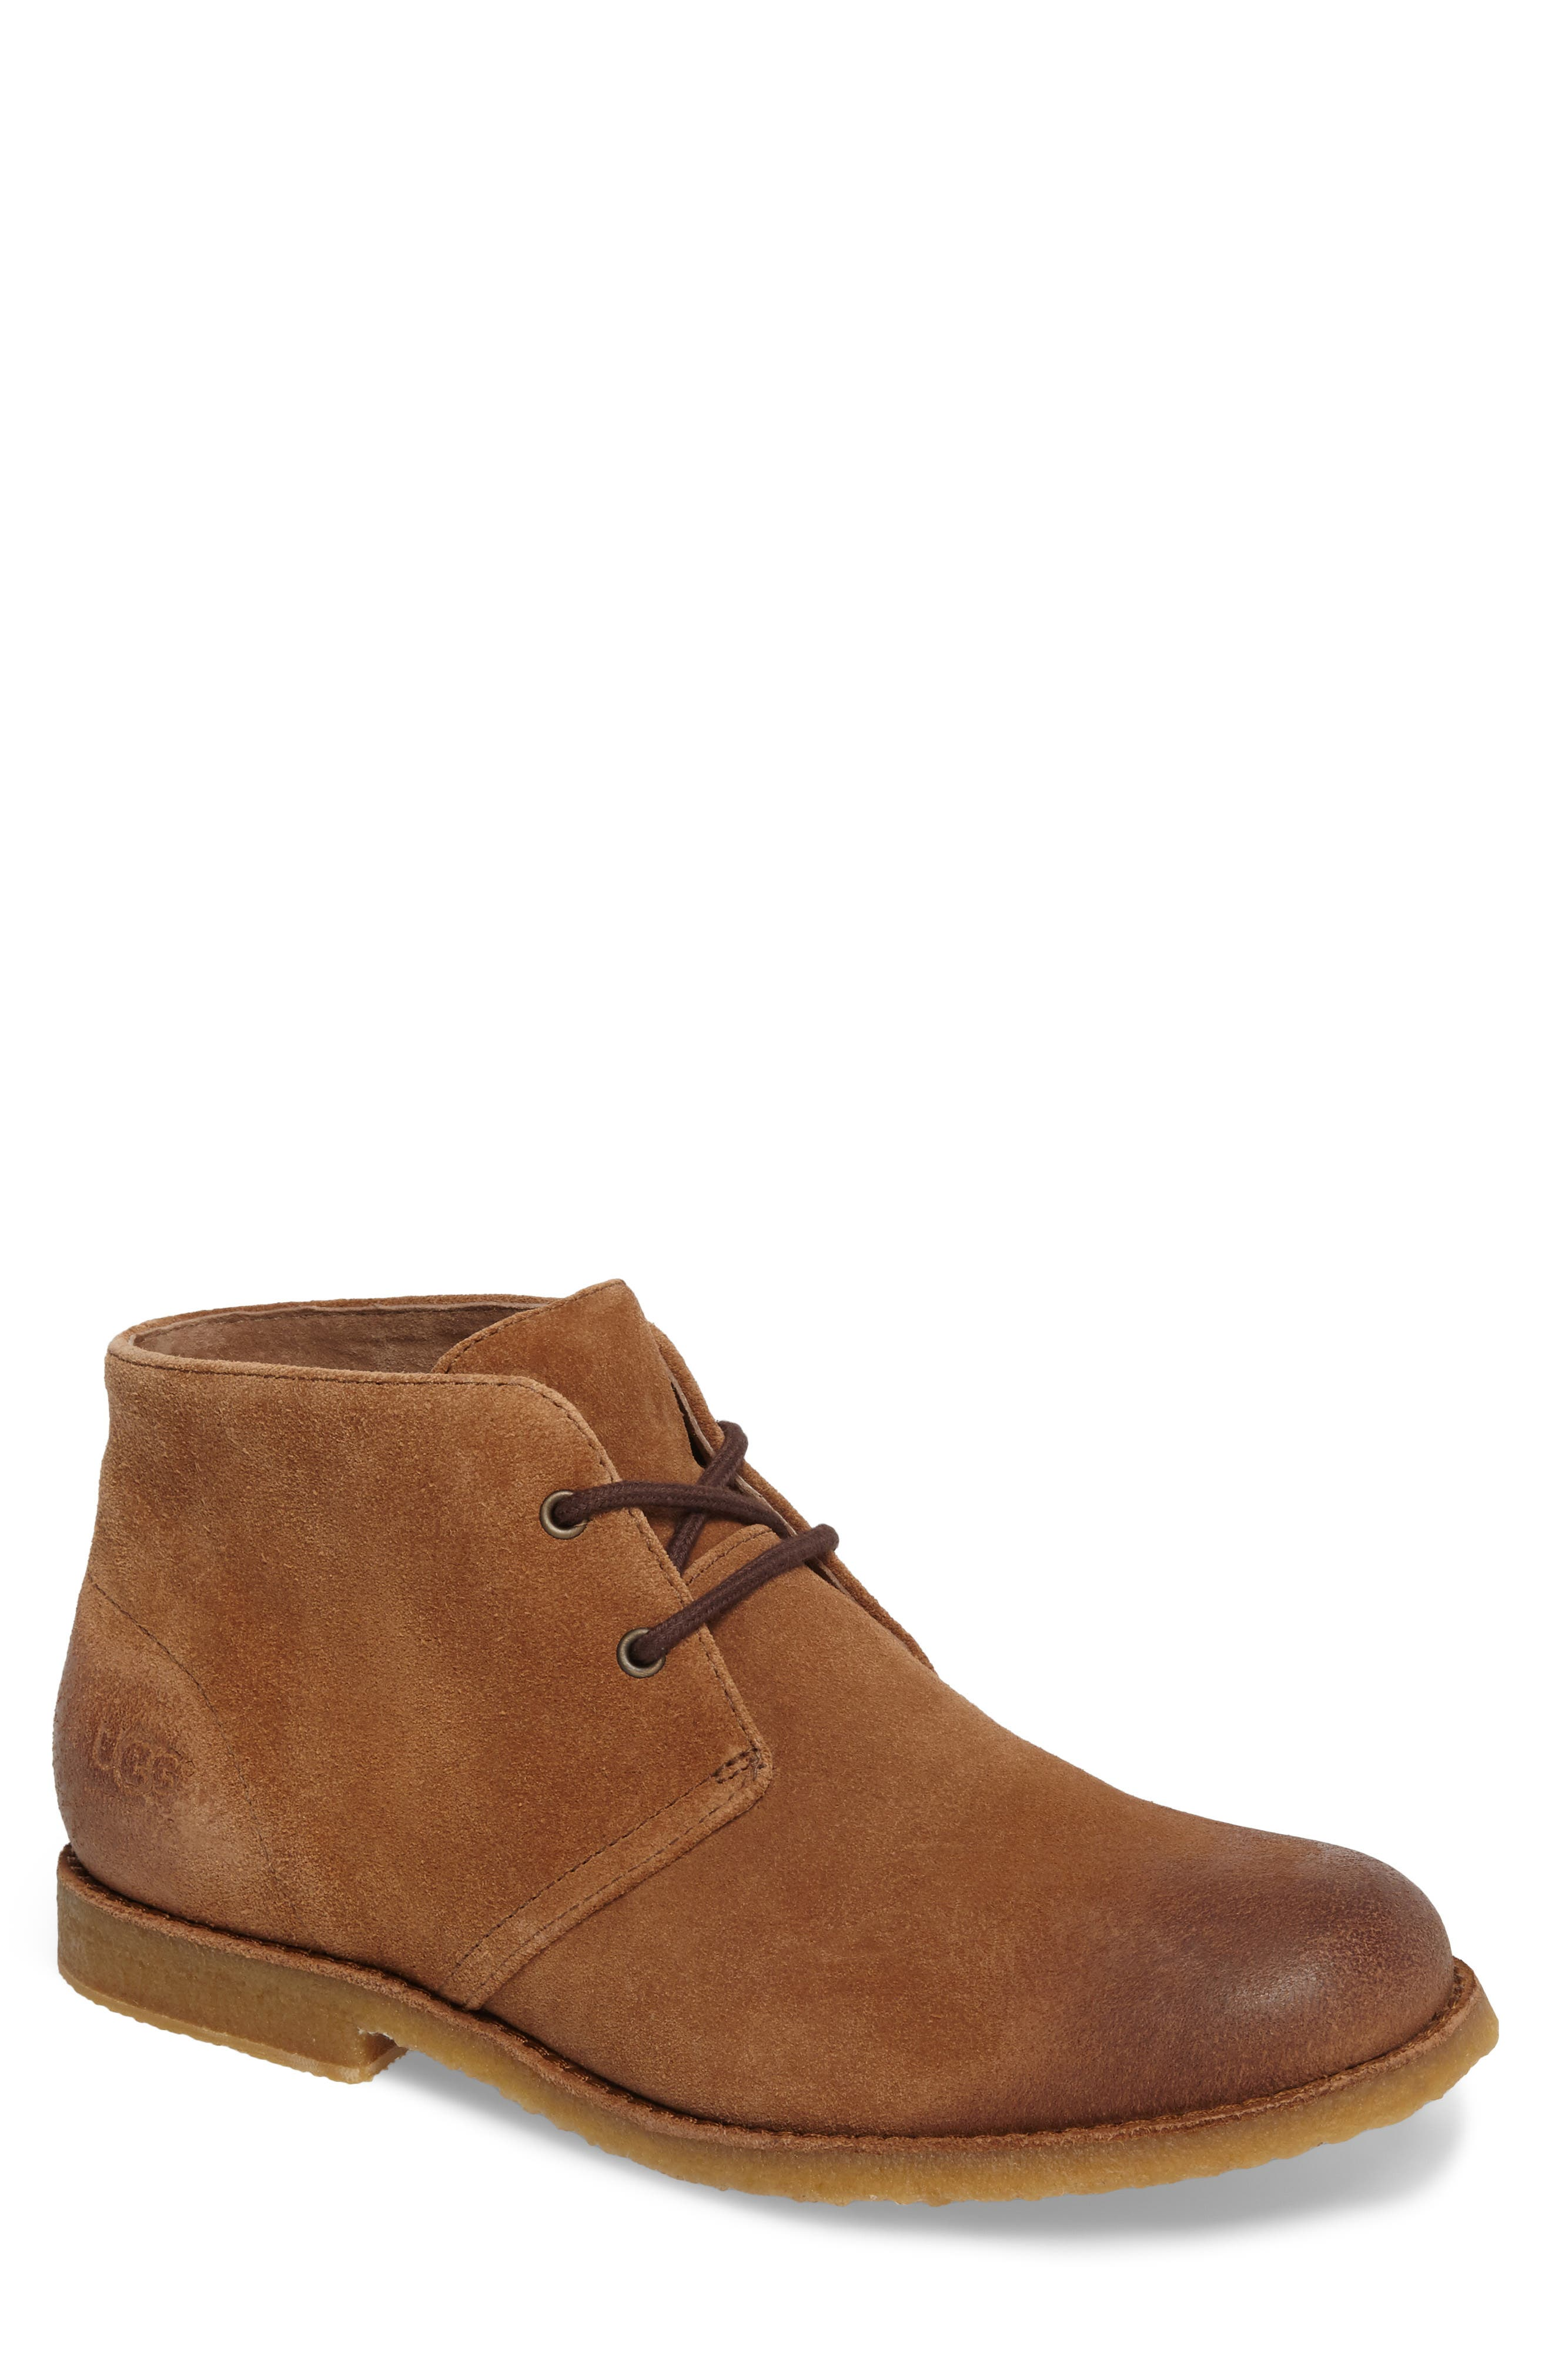 Main Image - UGG® Leighton Chukka Boot (Men)